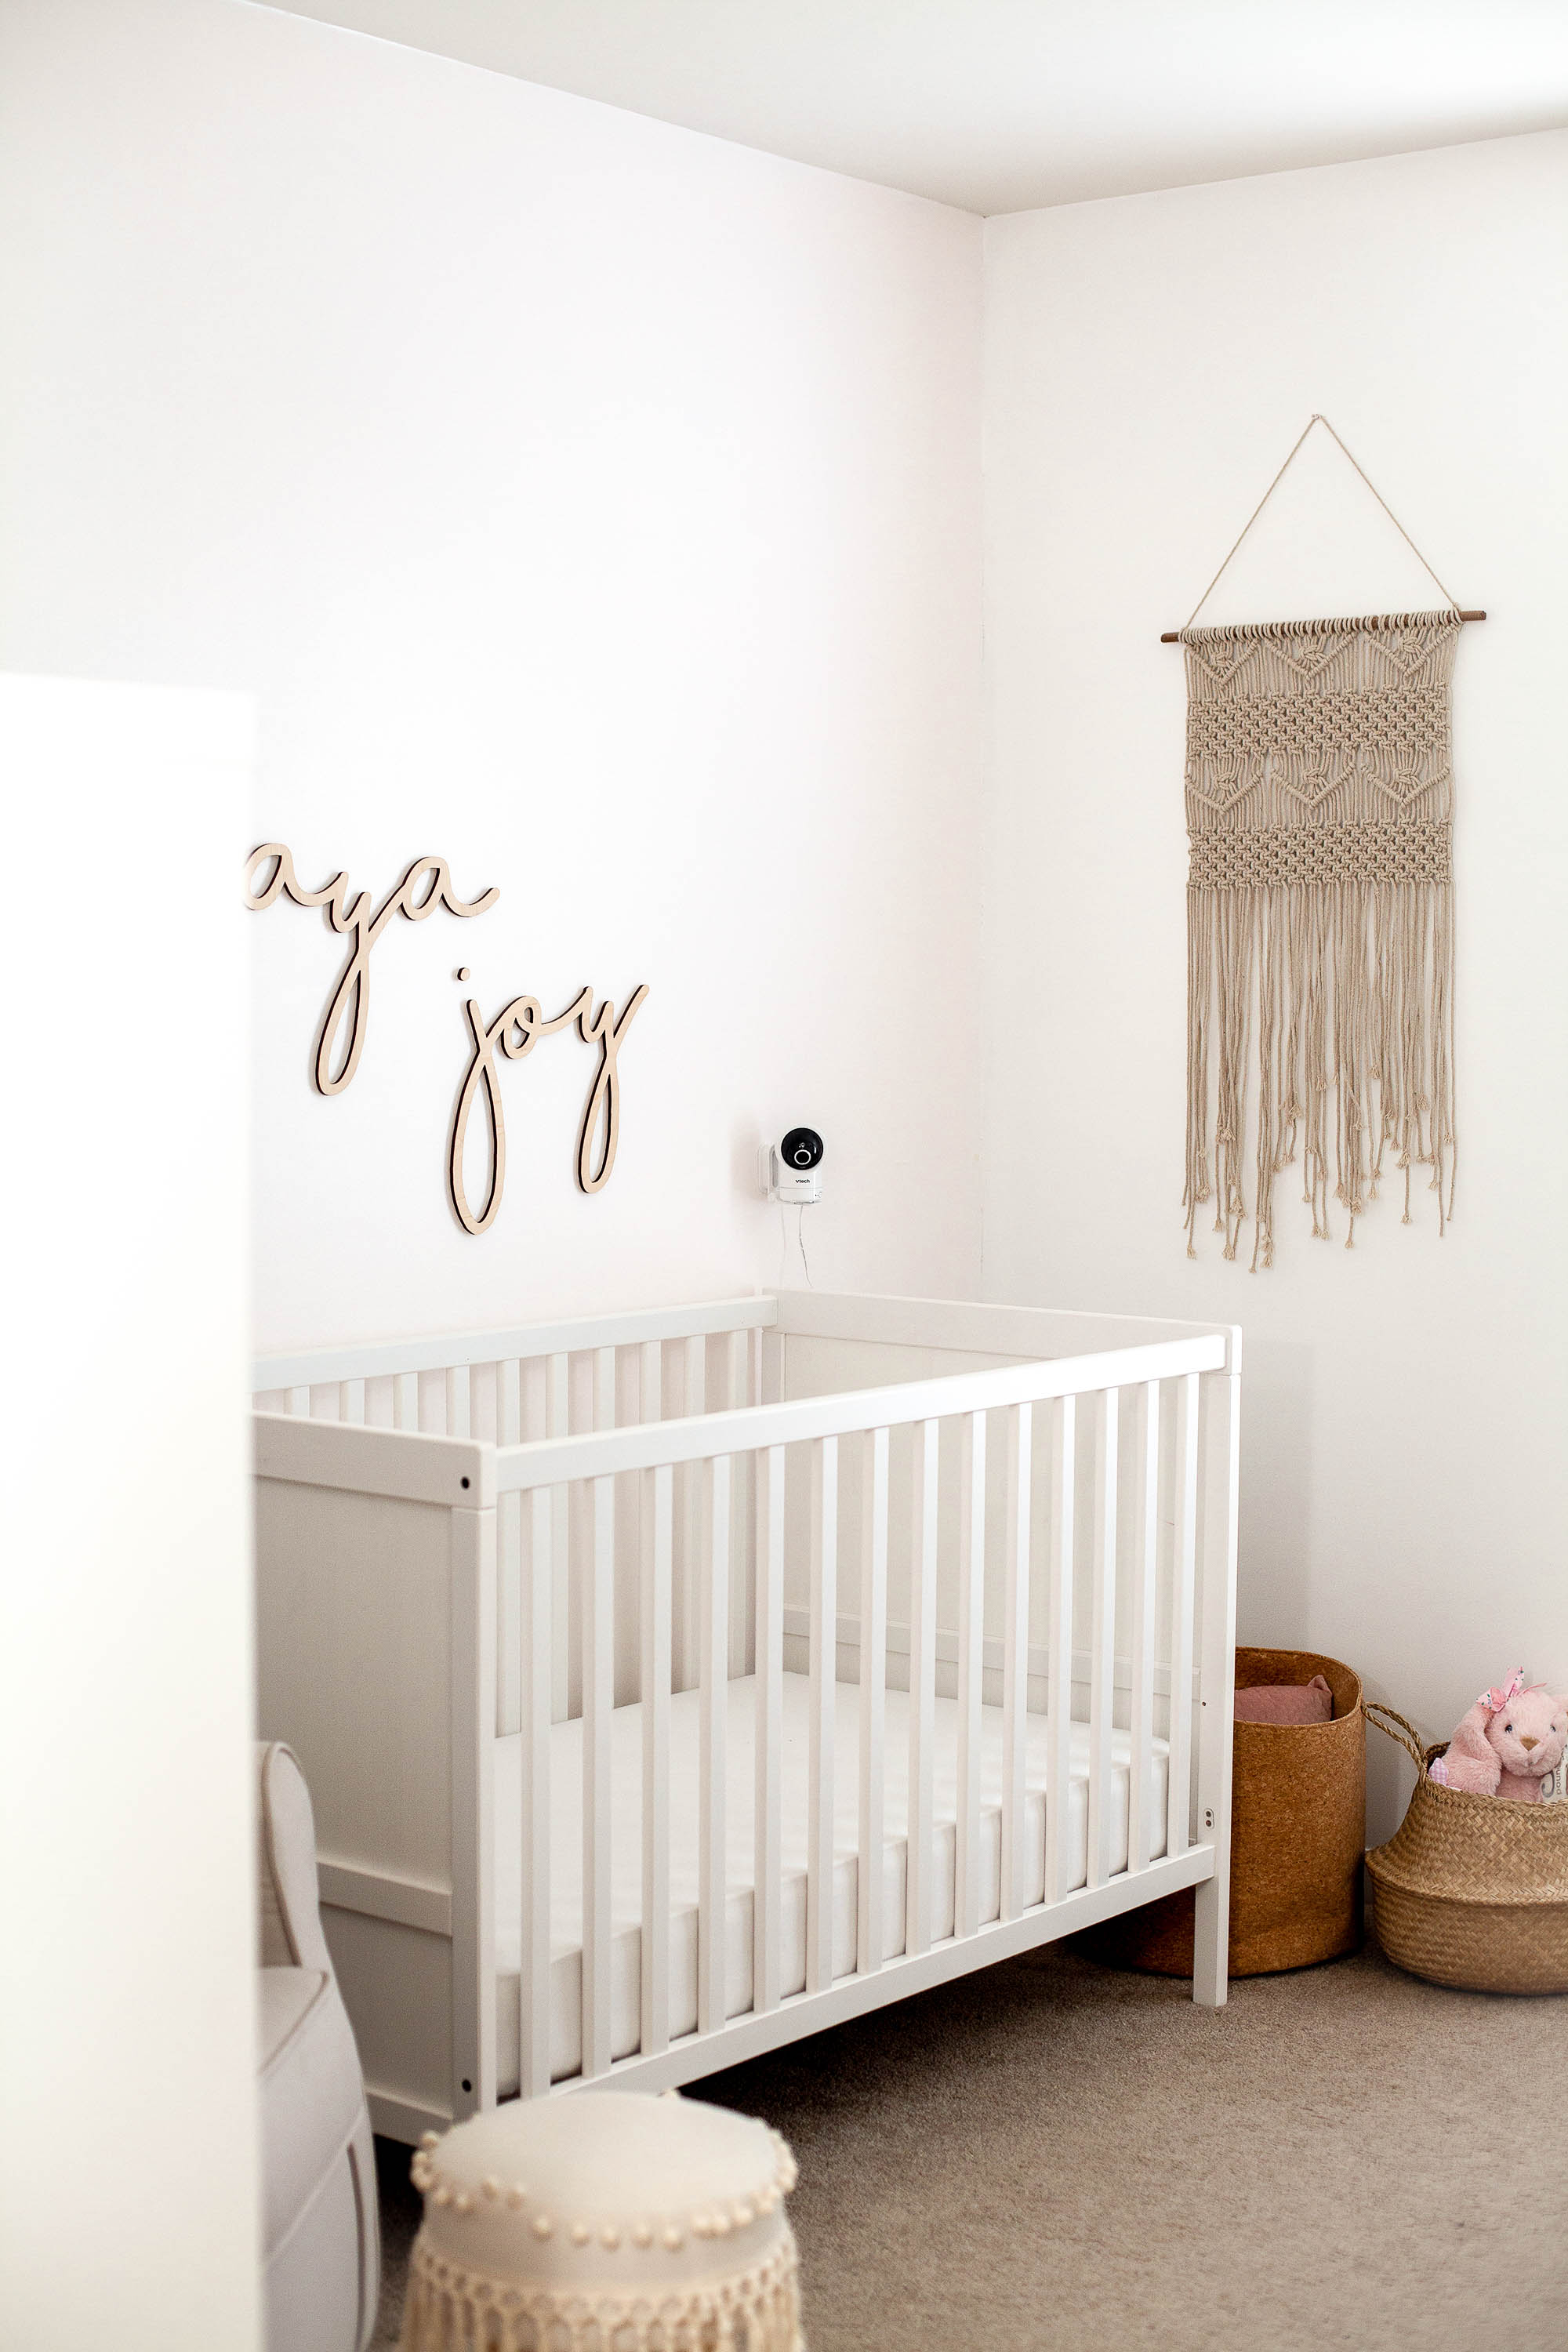 5 Nursery Essentials For First-Time Parents